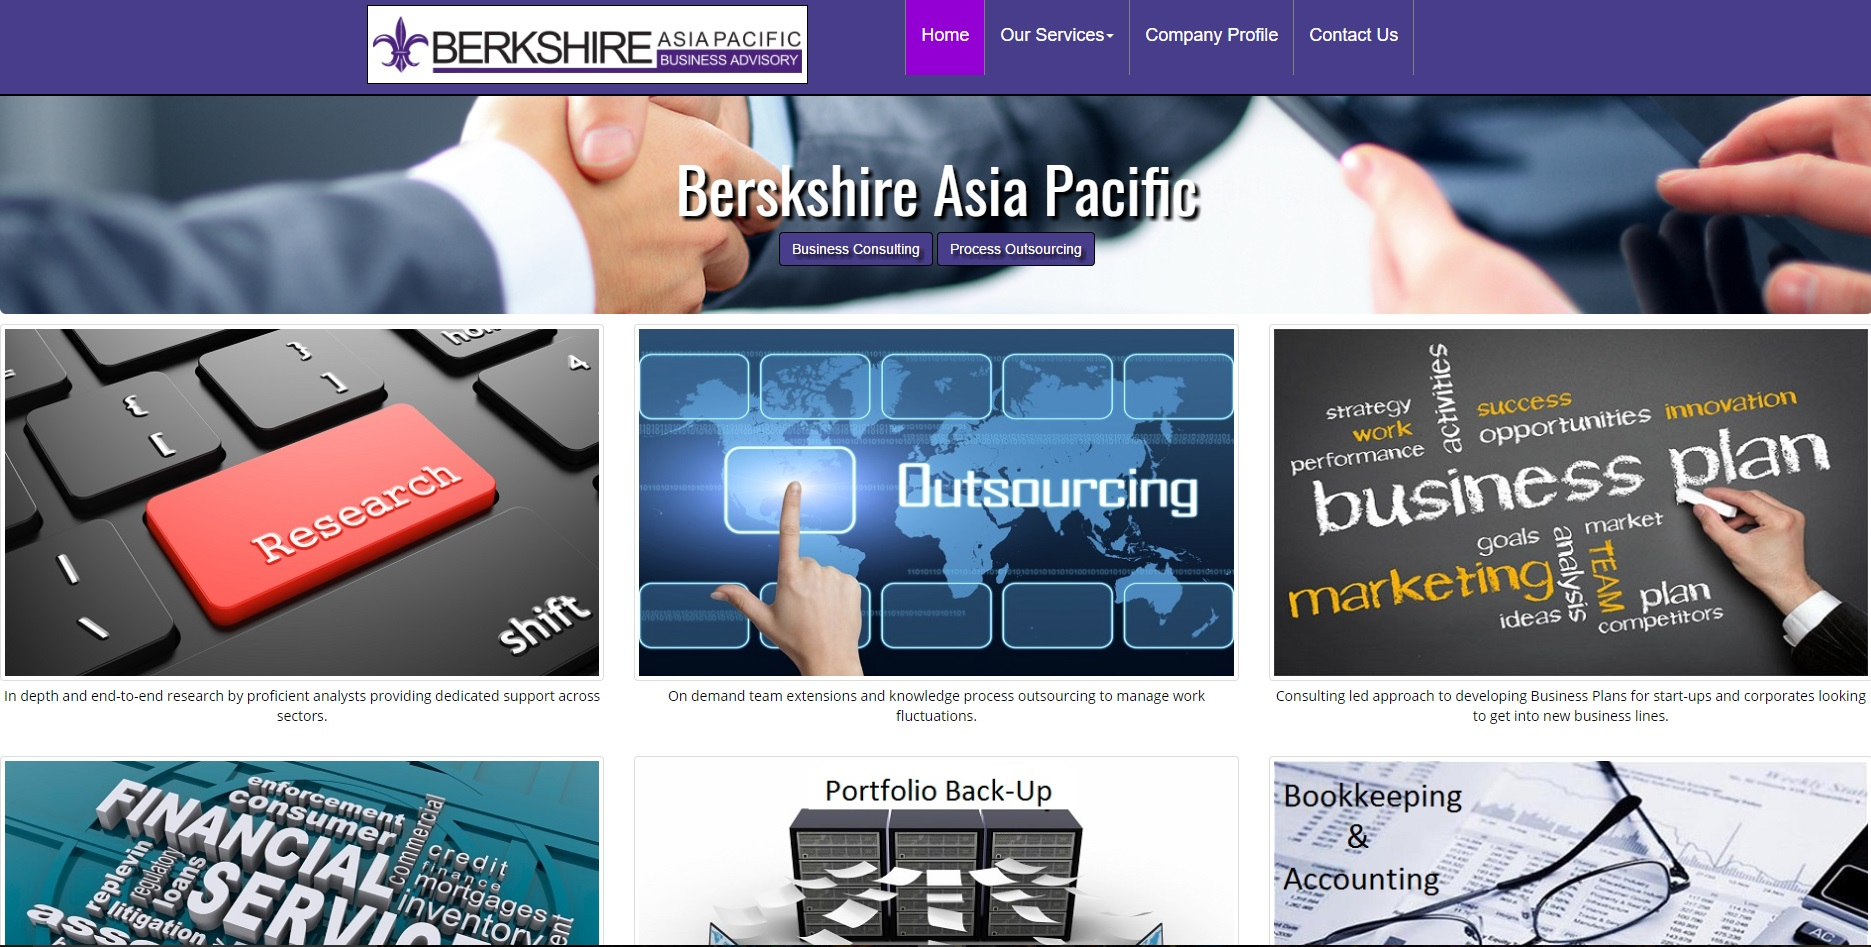 Berkshire Asia Pacific